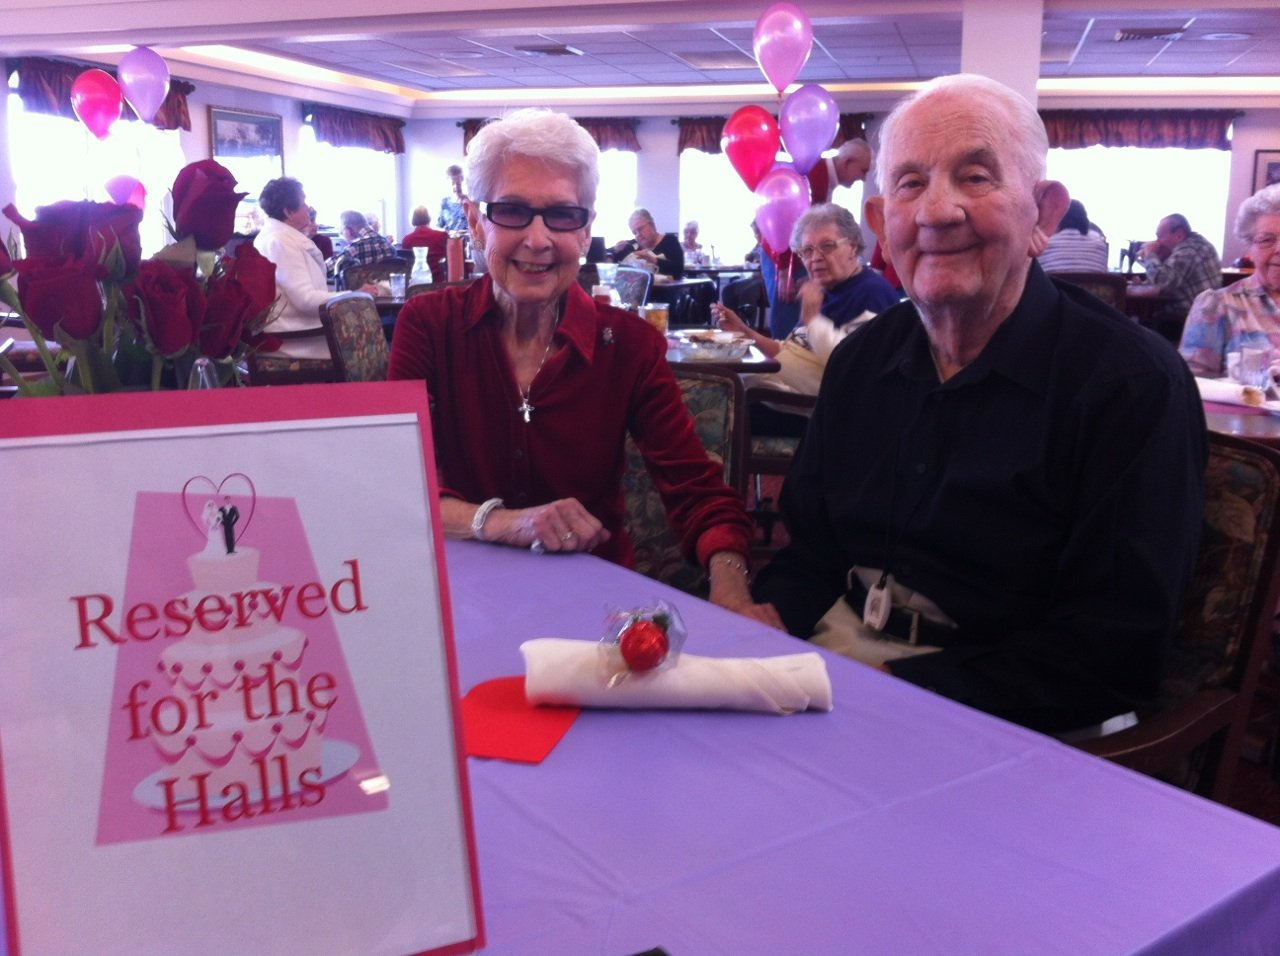 This Valentine's Day we're all celebrating love, but one Kennewick couple is celebrating a remarkable romantic milestone with their 72nd wedding anniversary.